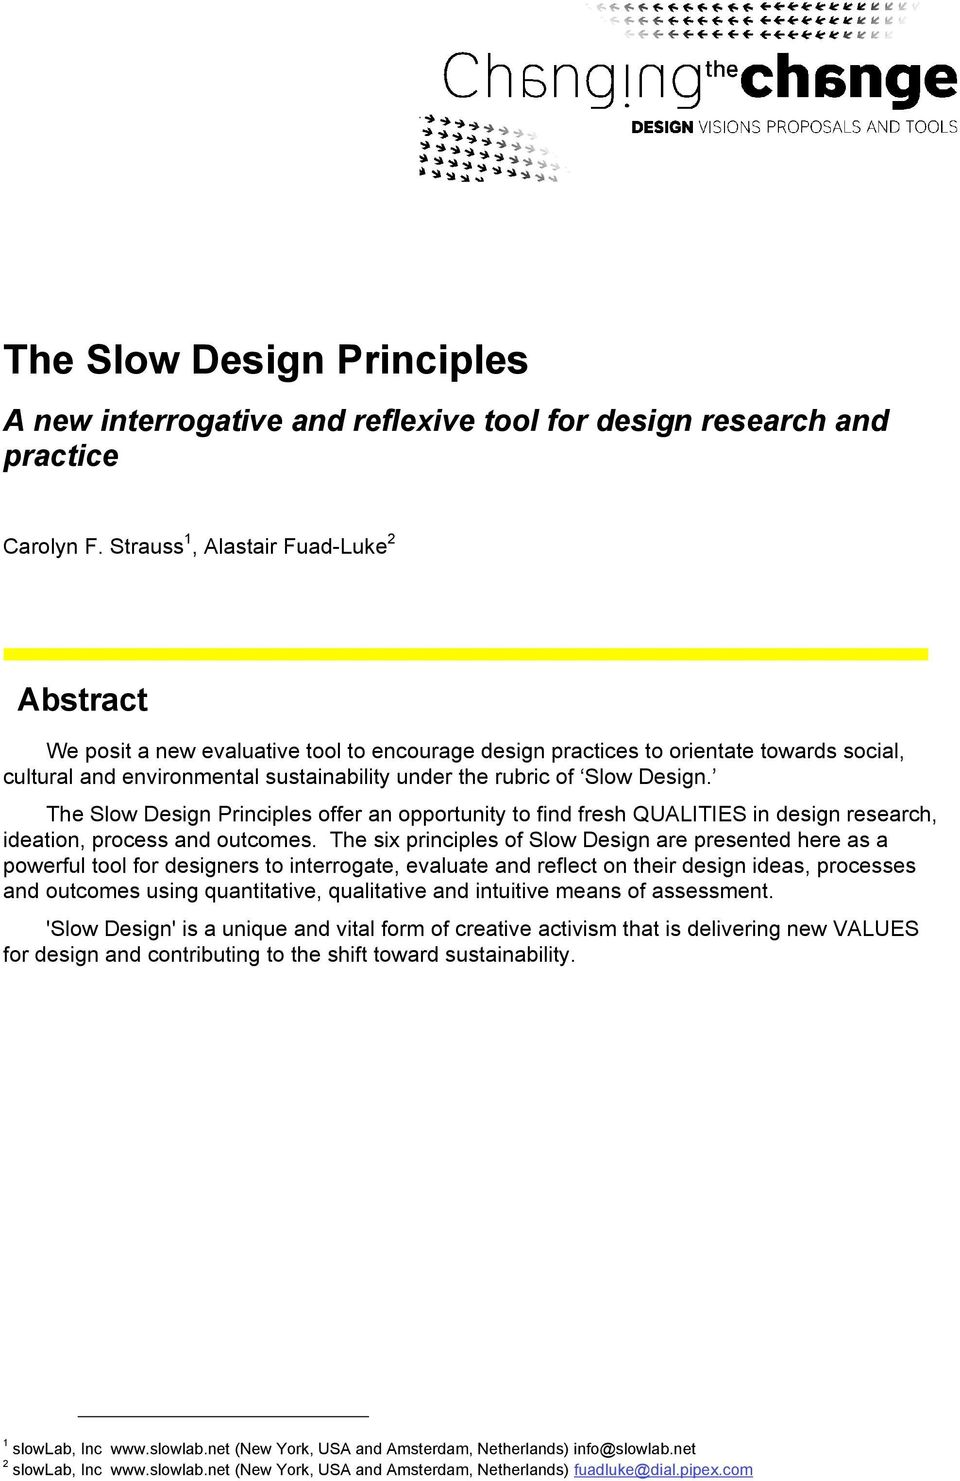 Design. The Slow Design Principles offer an opportunity to find fresh QUALITIES in design research, ideation, process and outcomes.